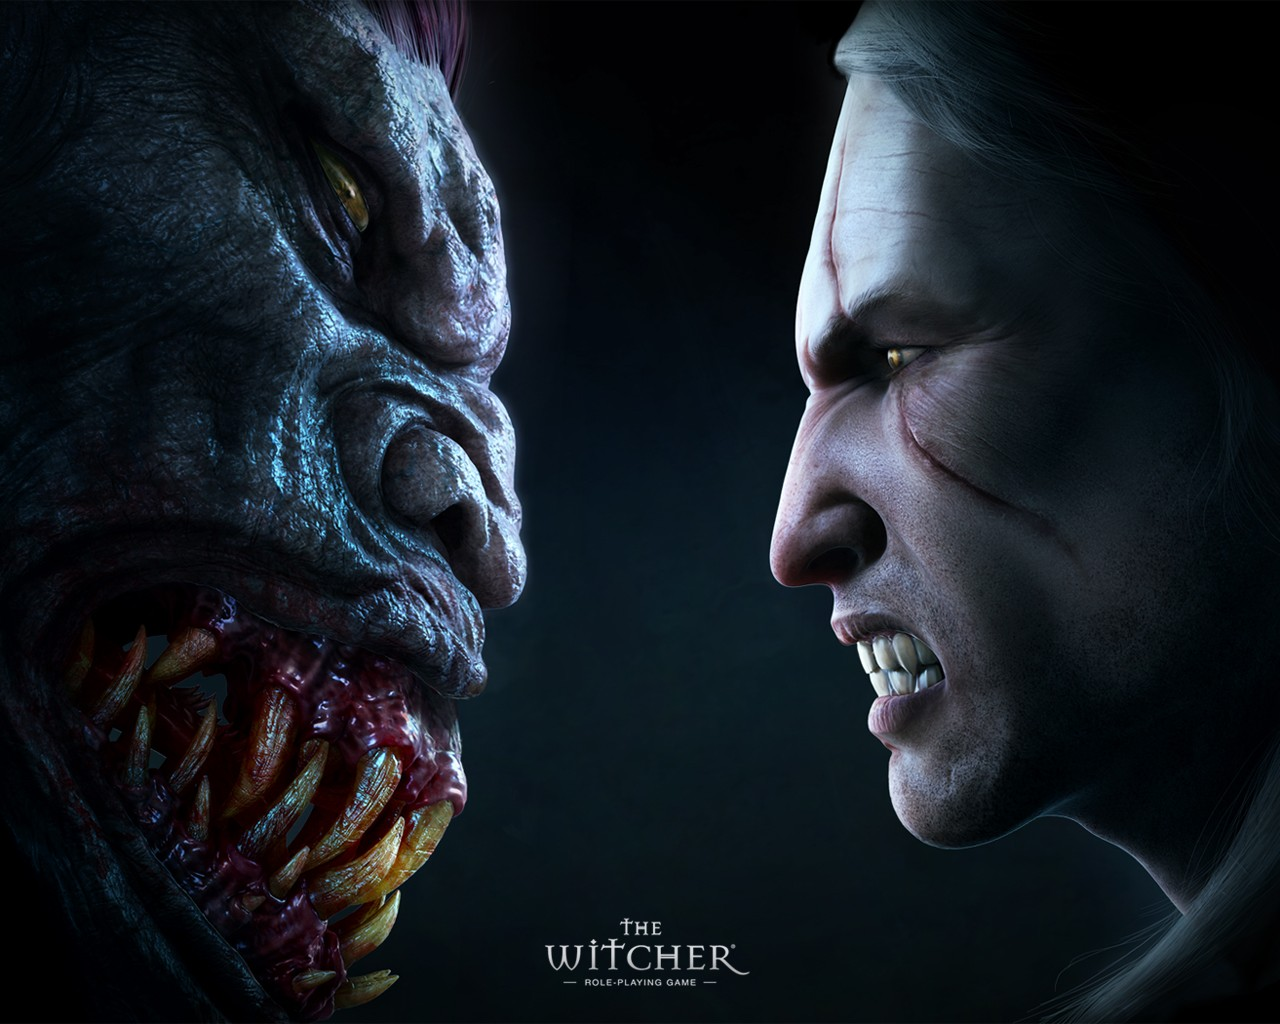 the witcher ведьмак стрыга face-to-face